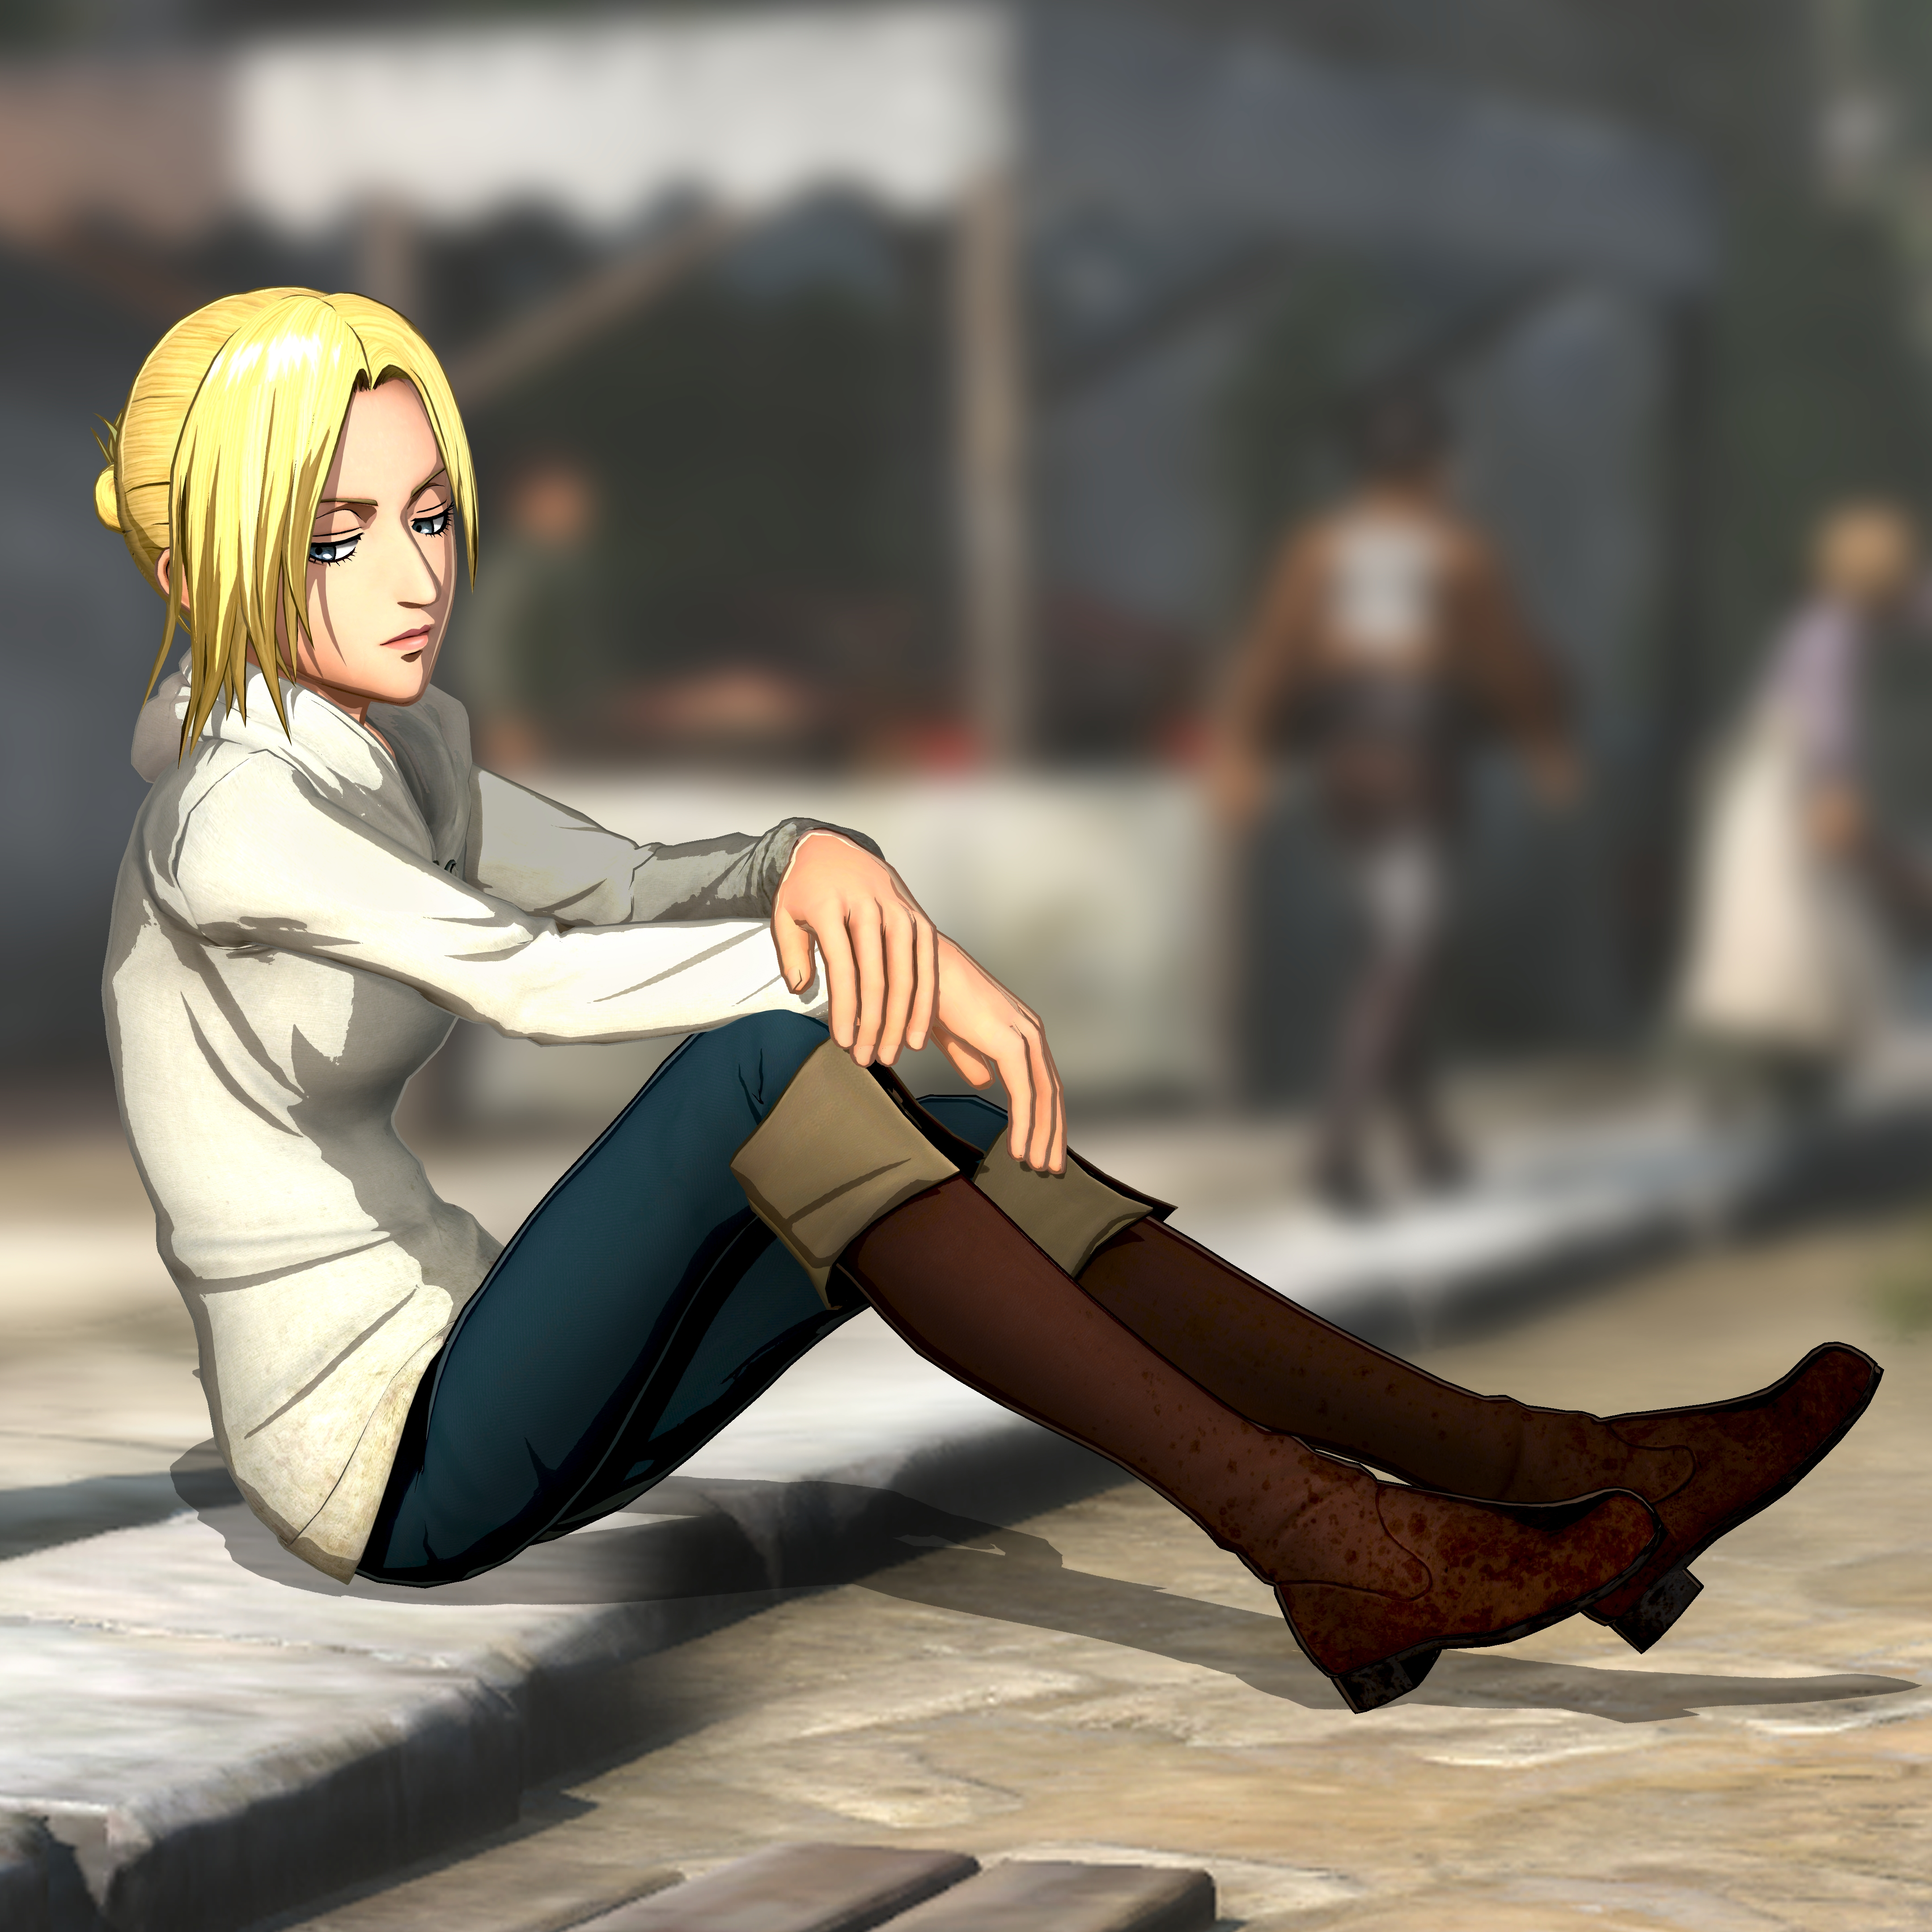 New Screenshots For Attack On Titan 2 Showcase Character